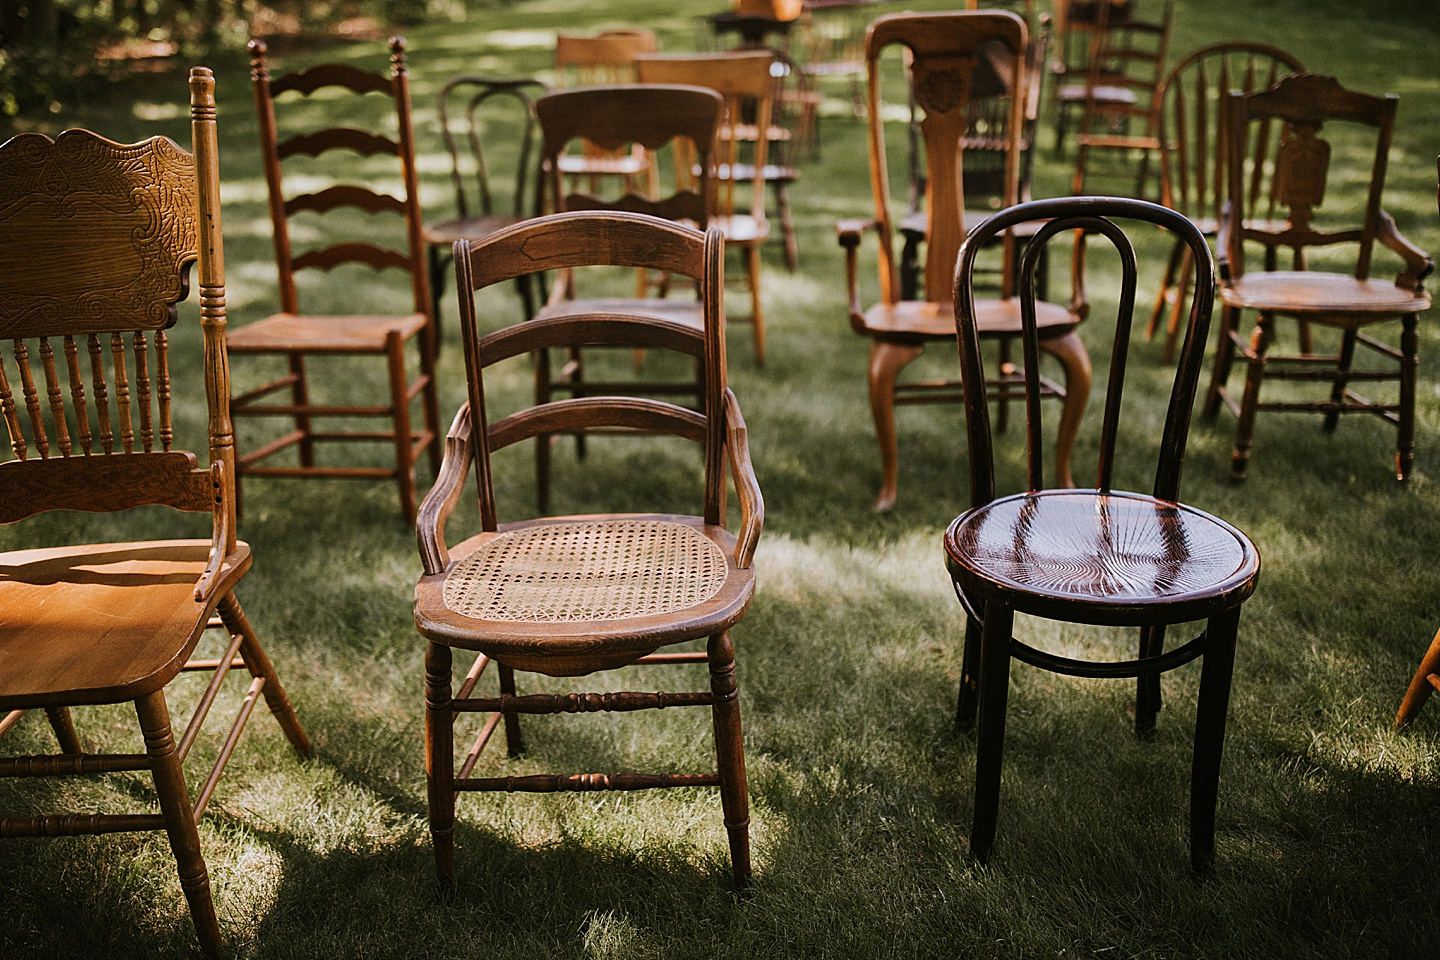 Antique chairs for use in wedding ceremony